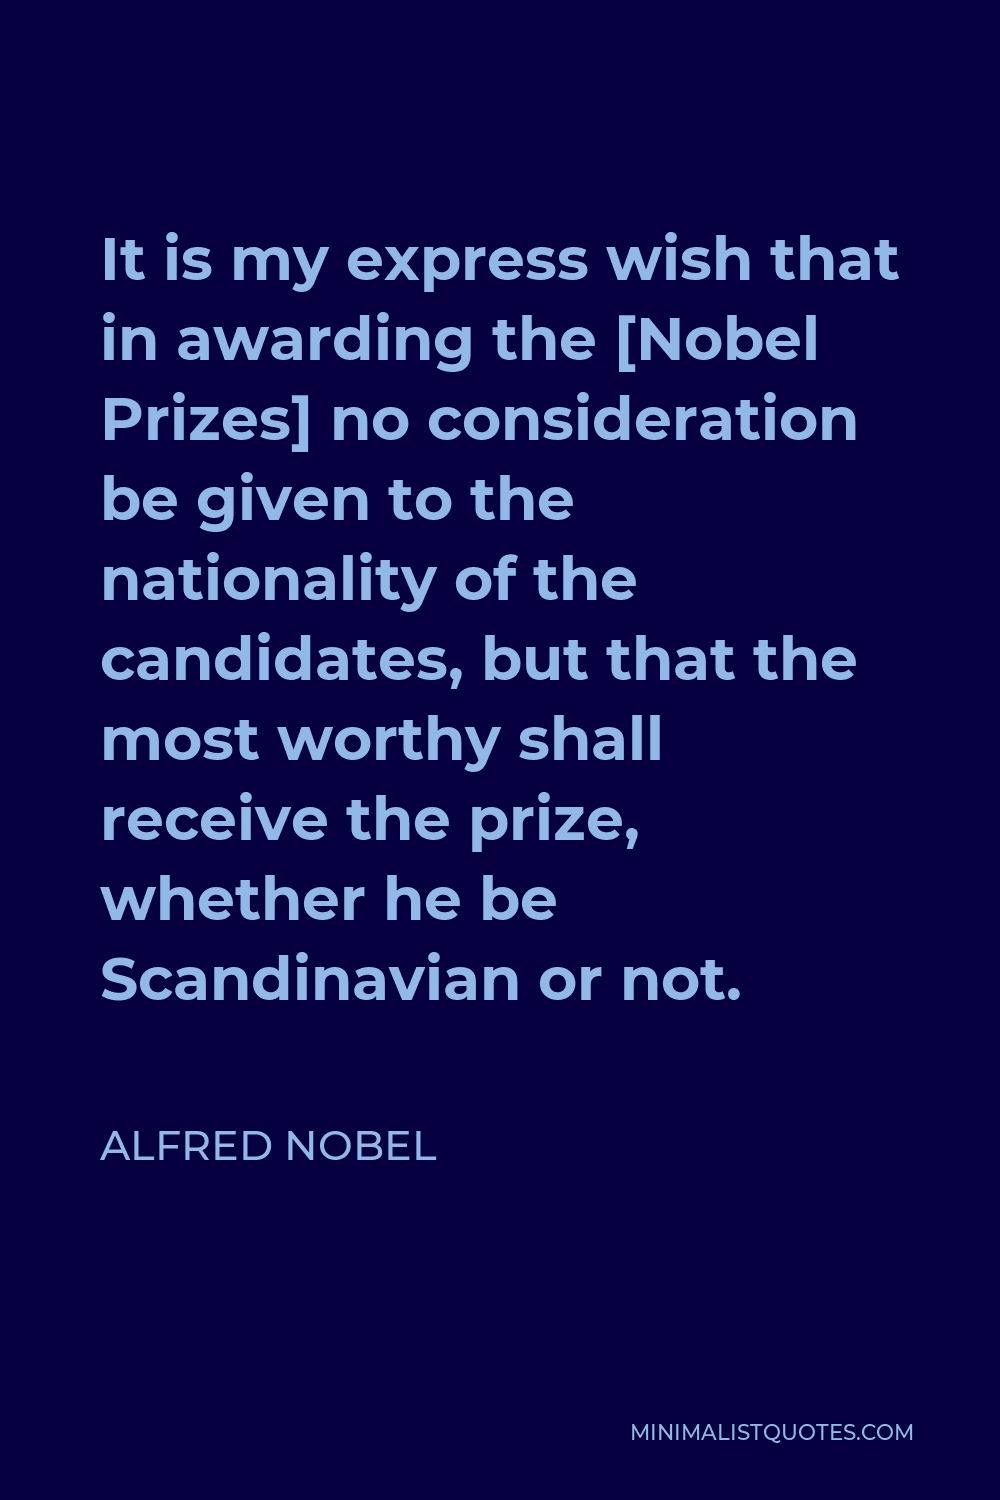 Alfred Nobel Quote - It is my express wish that in awarding the [Nobel Prizes] no consideration be given to the nationality of the candidates, but that the most worthy shall receive the prize, whether he be Scandinavian or not.